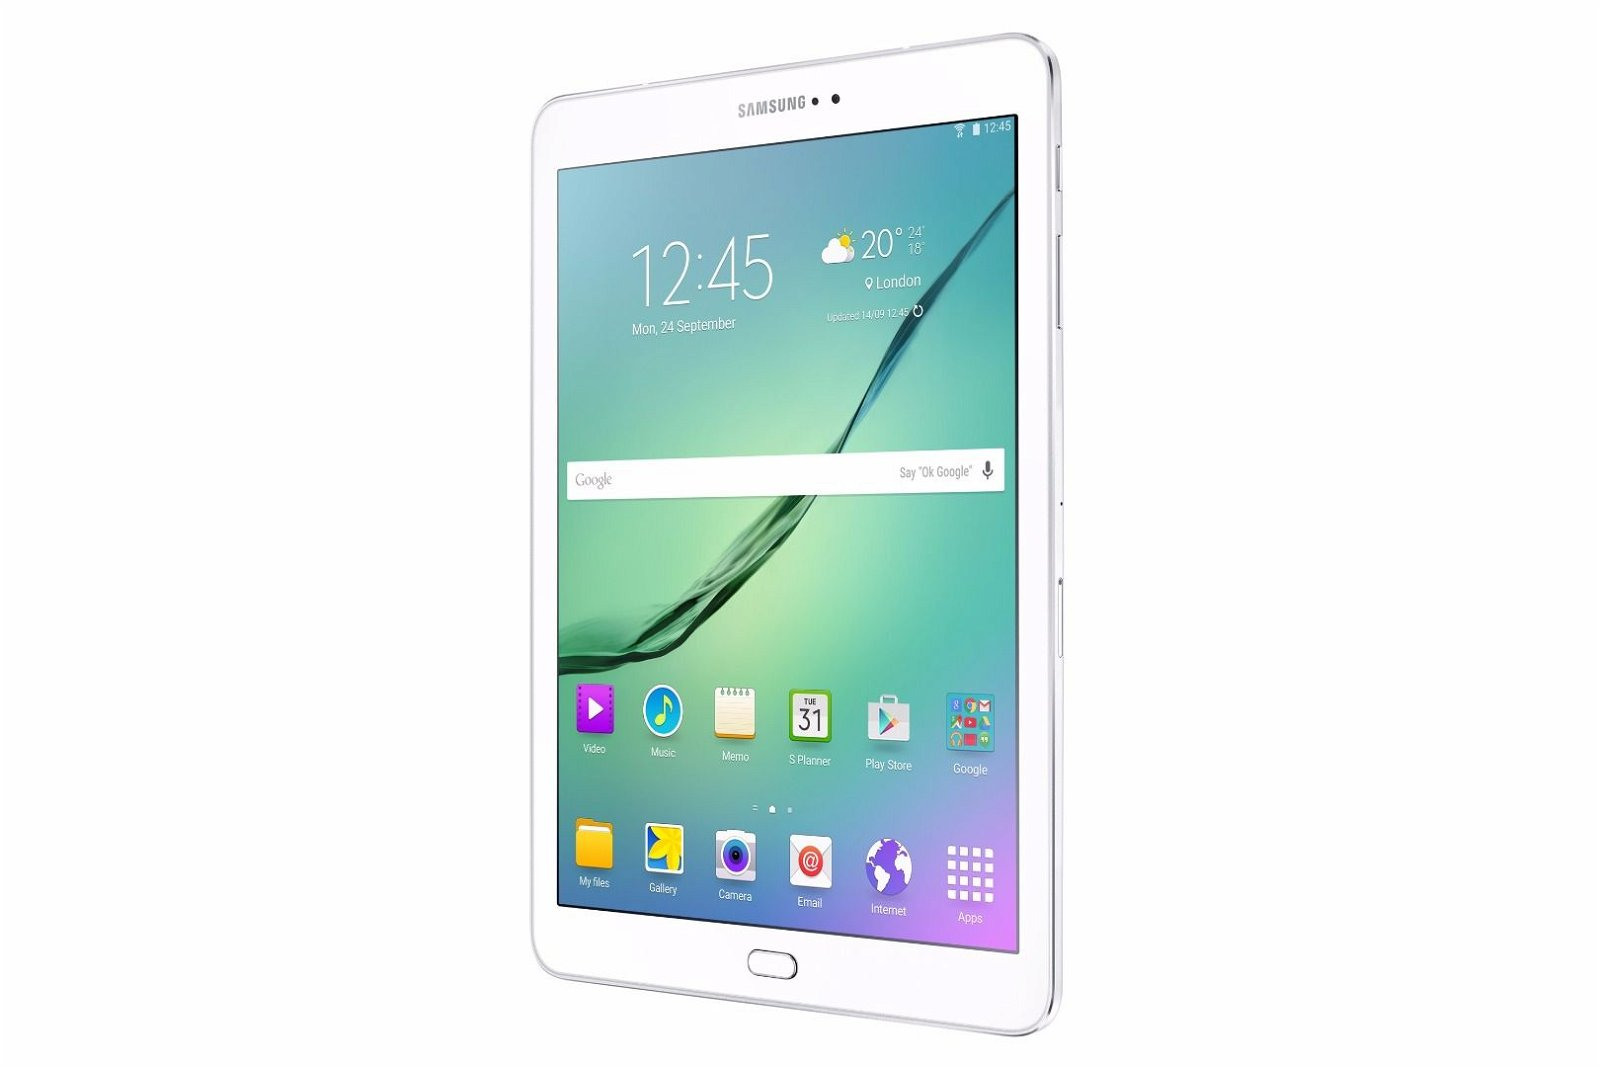 Samsung is Launching Galaxy Tab S2 in August in 8-inch And 9.7-inch Models 21